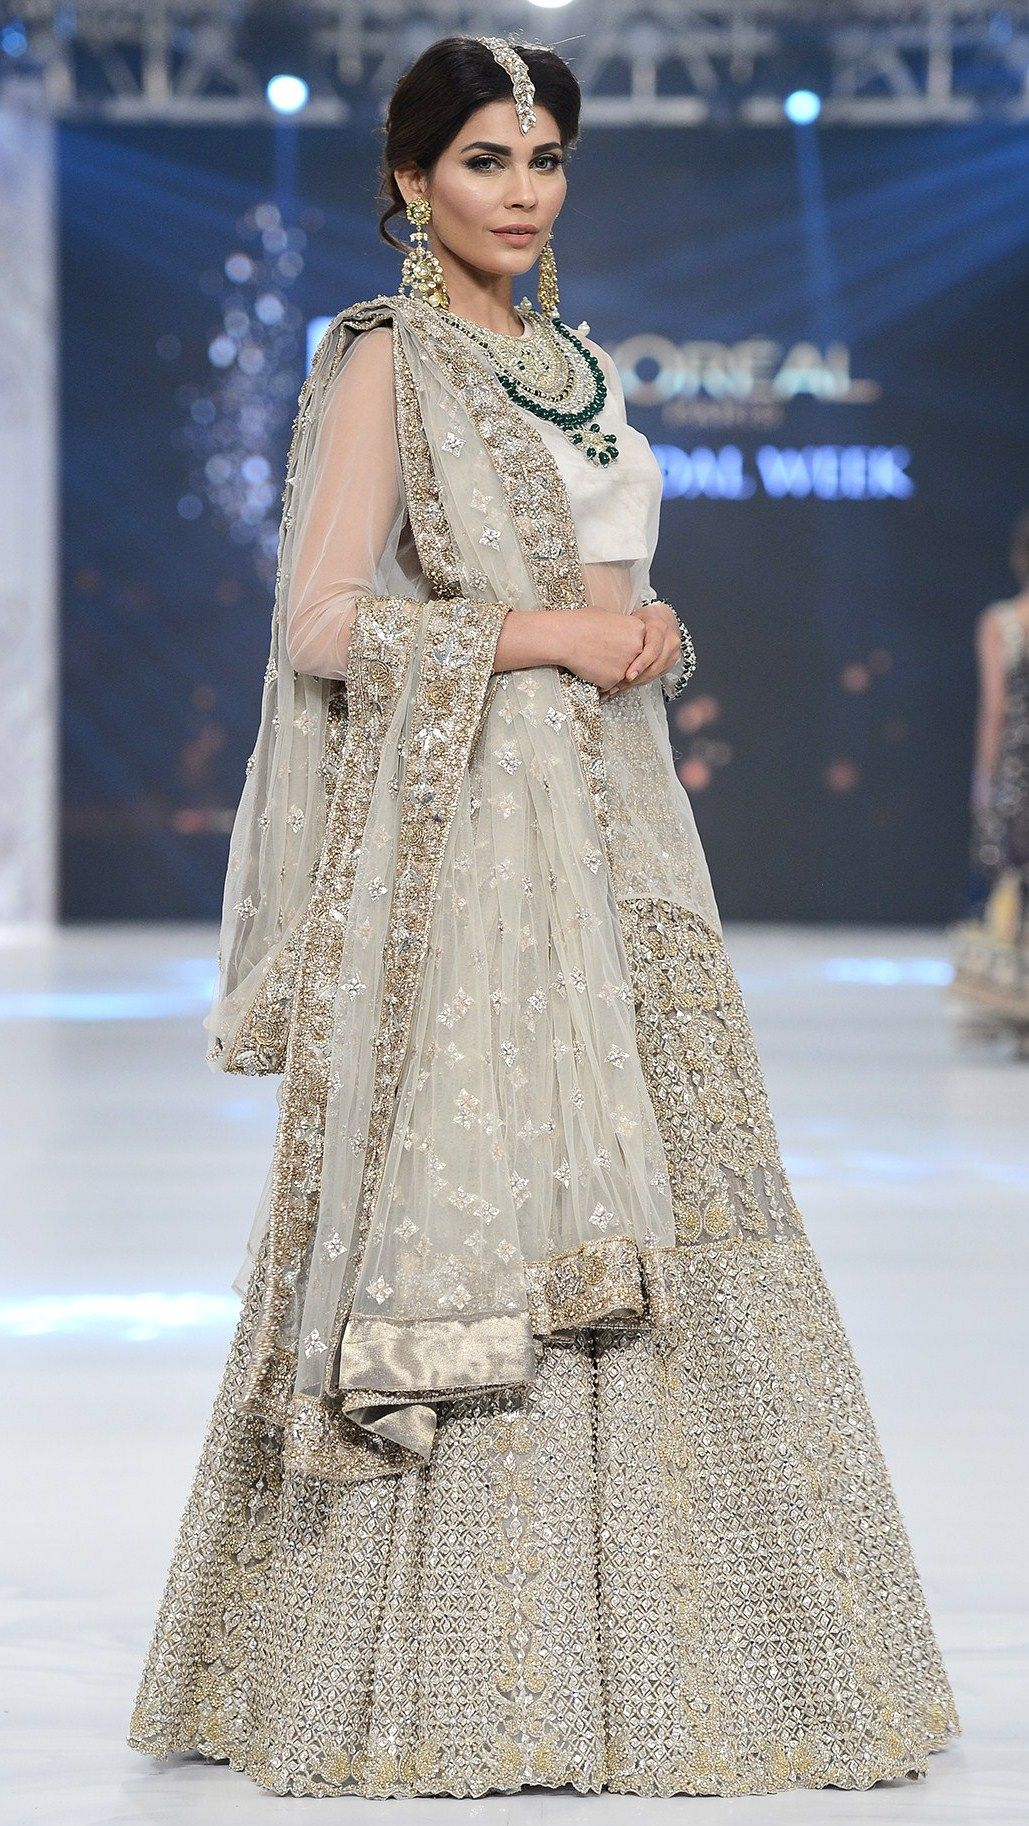 Mahgul PLBW - F/W 2016...OMG, gorgeous. Love the fabric & bridal tones. Select 1-3 details to recreate for that unique bridal look. Fabric is everything for a simple silhouette.